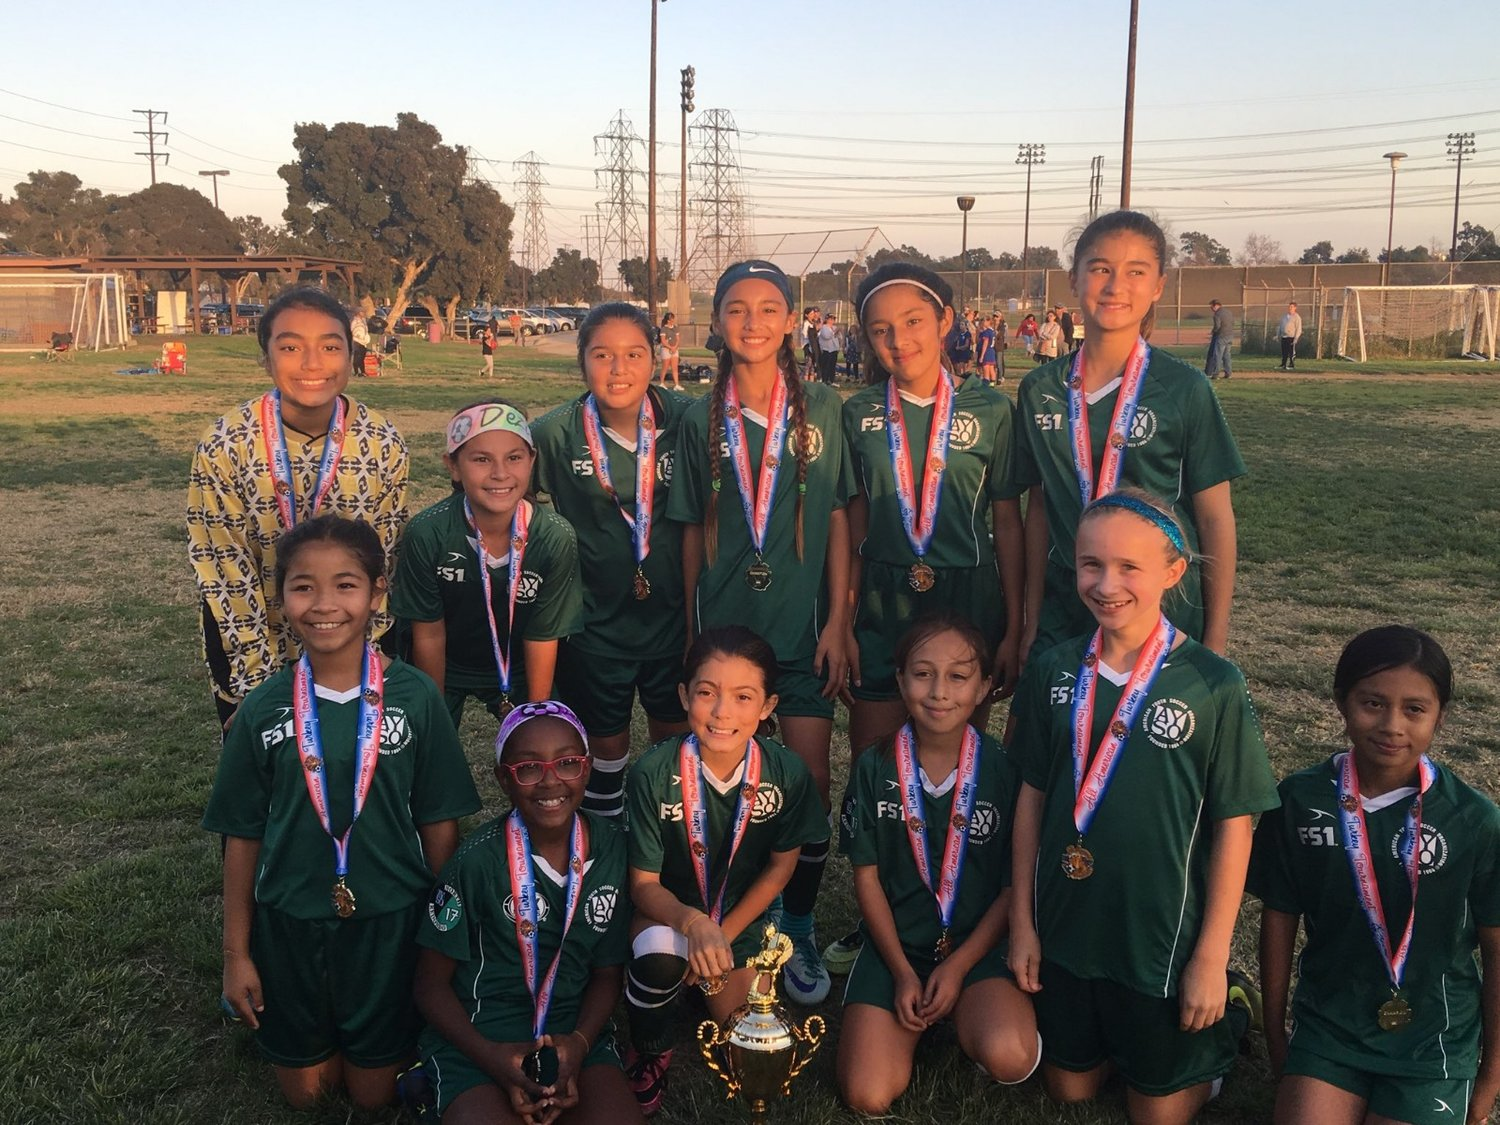 Congratulations to our GU12 Team for Winning The Turkey